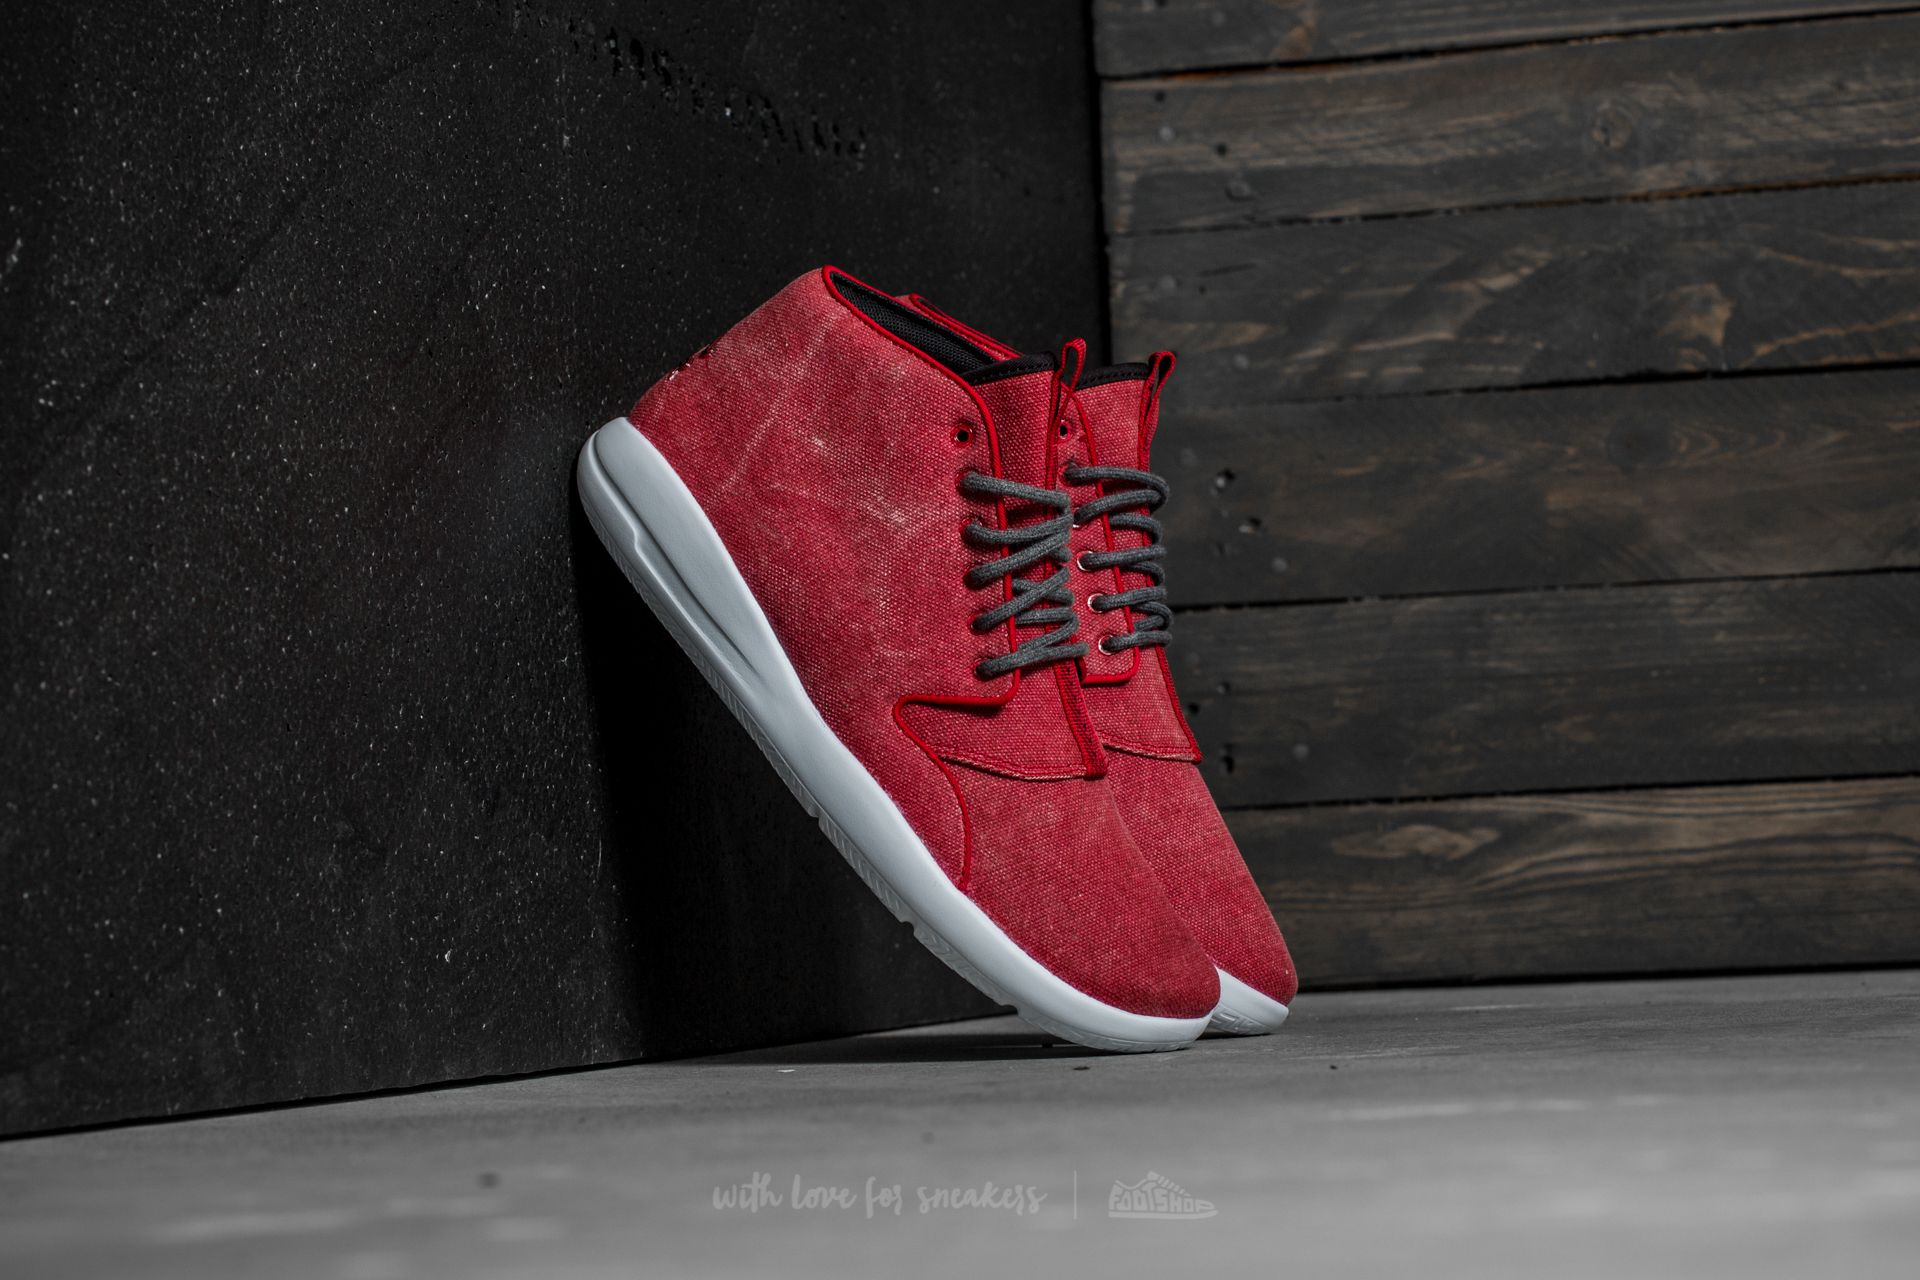 wholesale dealer 7d873 37704 Jordan Eclipse Chukka. Gym Red Black-White